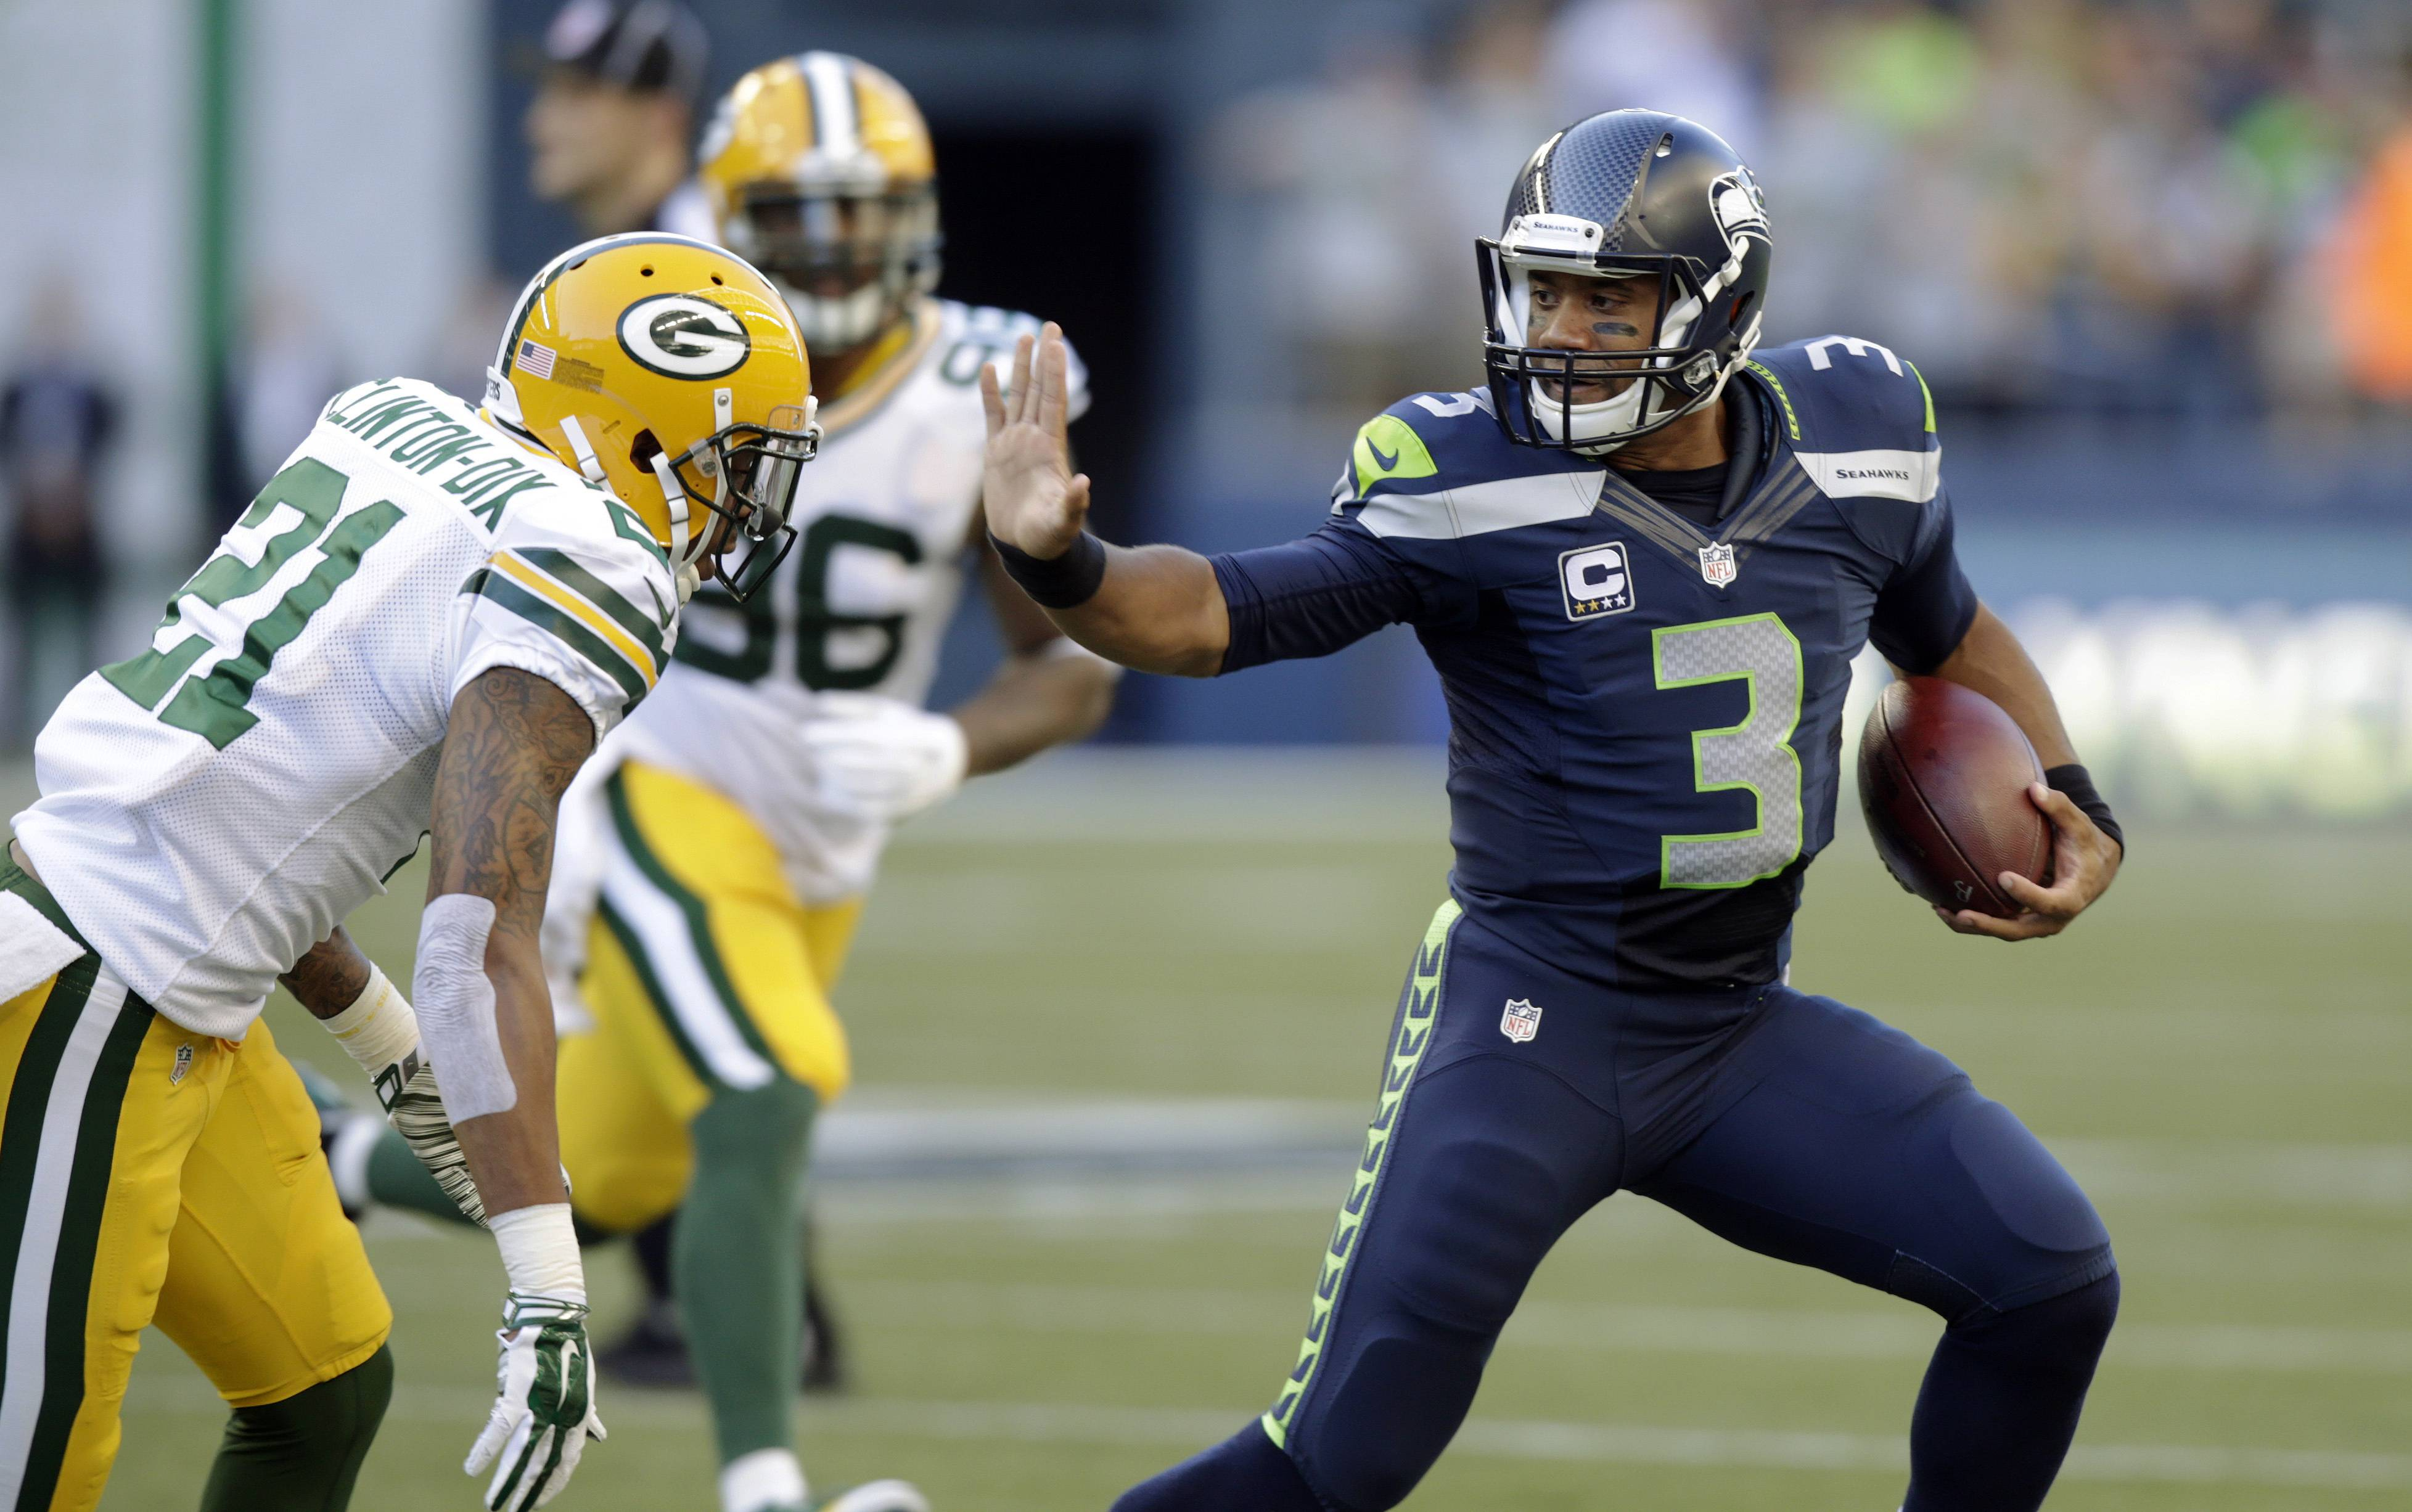 Seattle Seahawks quarterback Russell Wilson (3) avoids Green Bay Packers' Ha Ha Clinton-Dix (21) during the first half of an NFL football game, Thursday, Sept. 4, 2014, in Seattle. (AP Photo/Stephen Brashear)